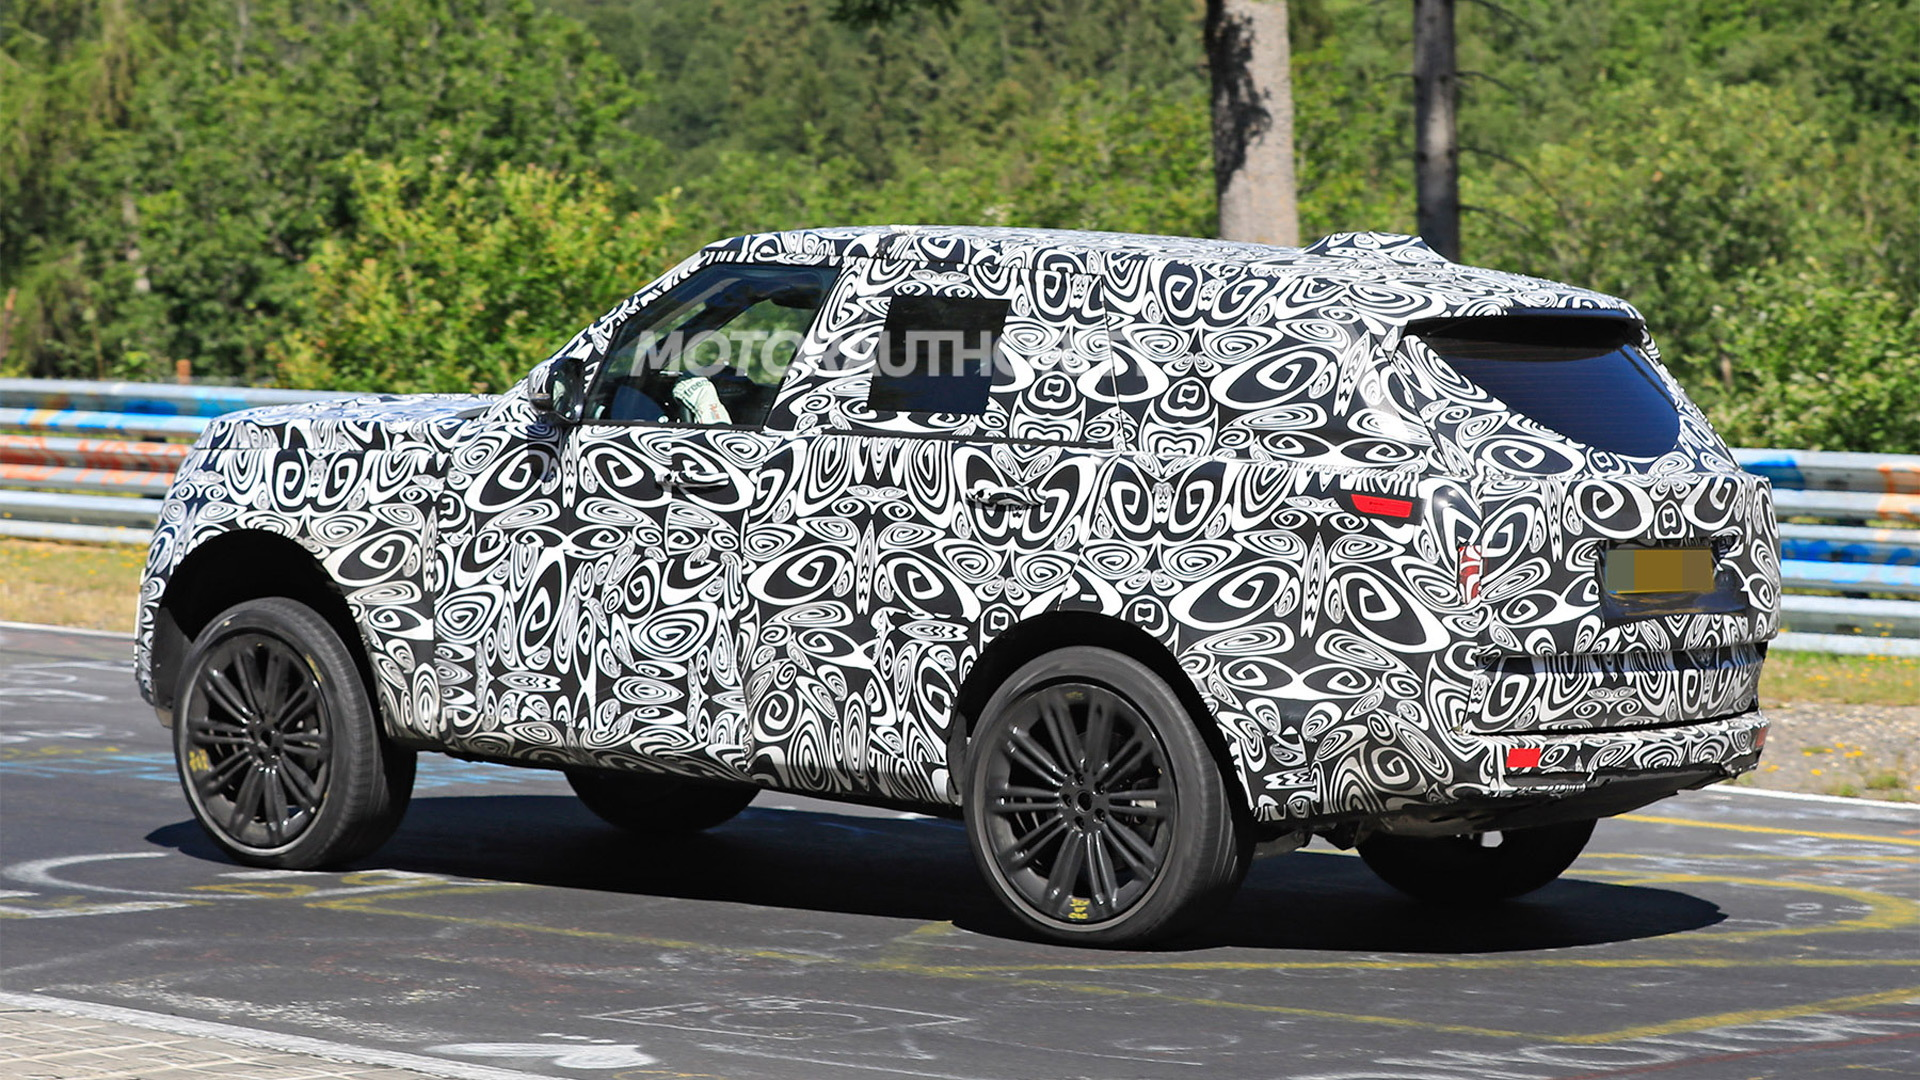 2022 路虎 Range Rover spy shots - Photo credit: S. Baldauf/SB-Medien